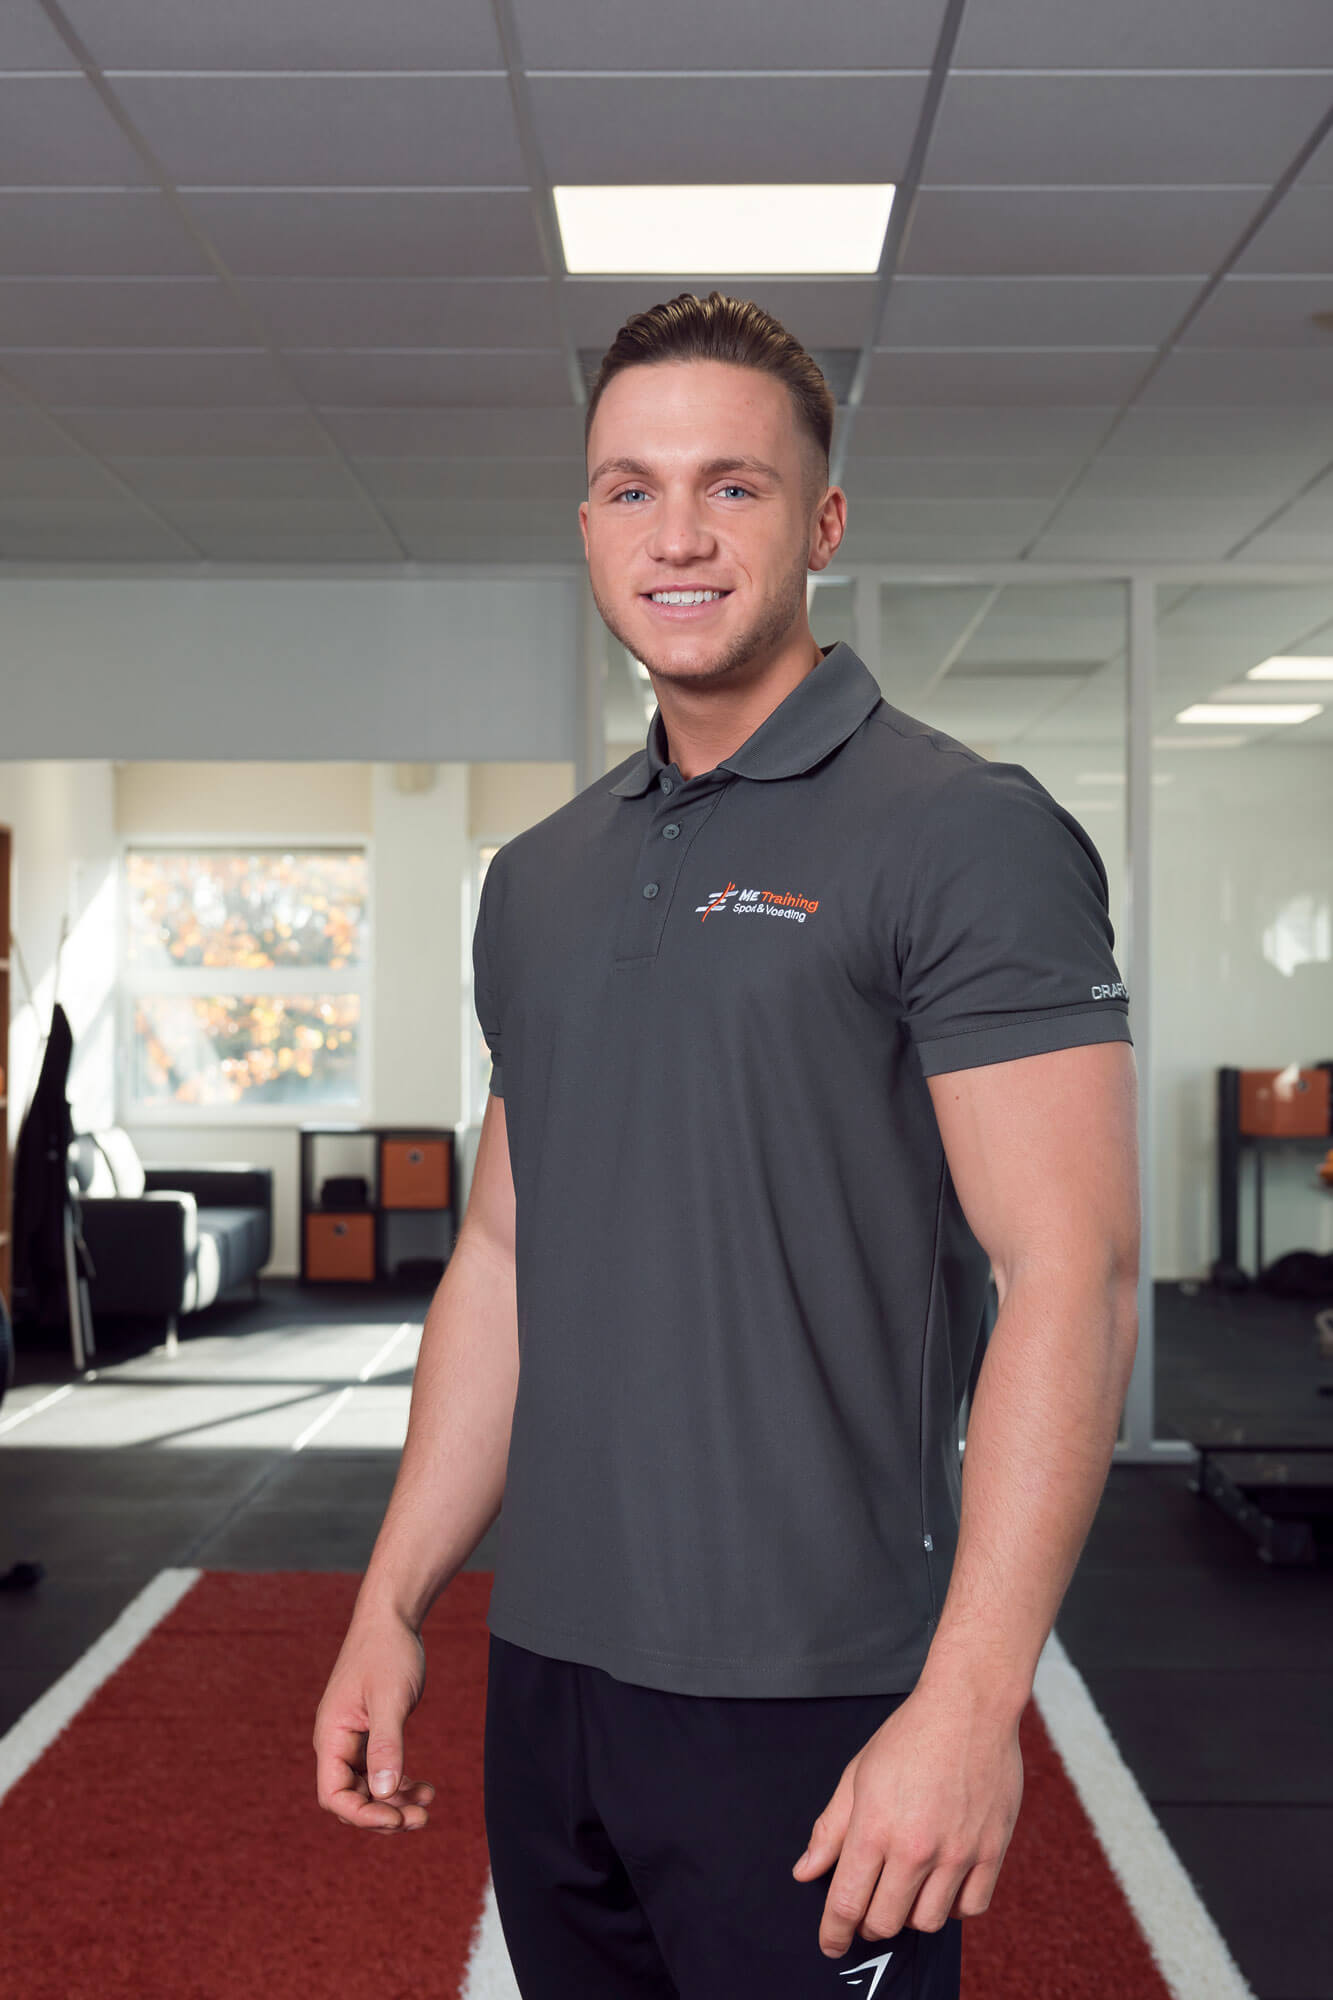 personal trainer portret